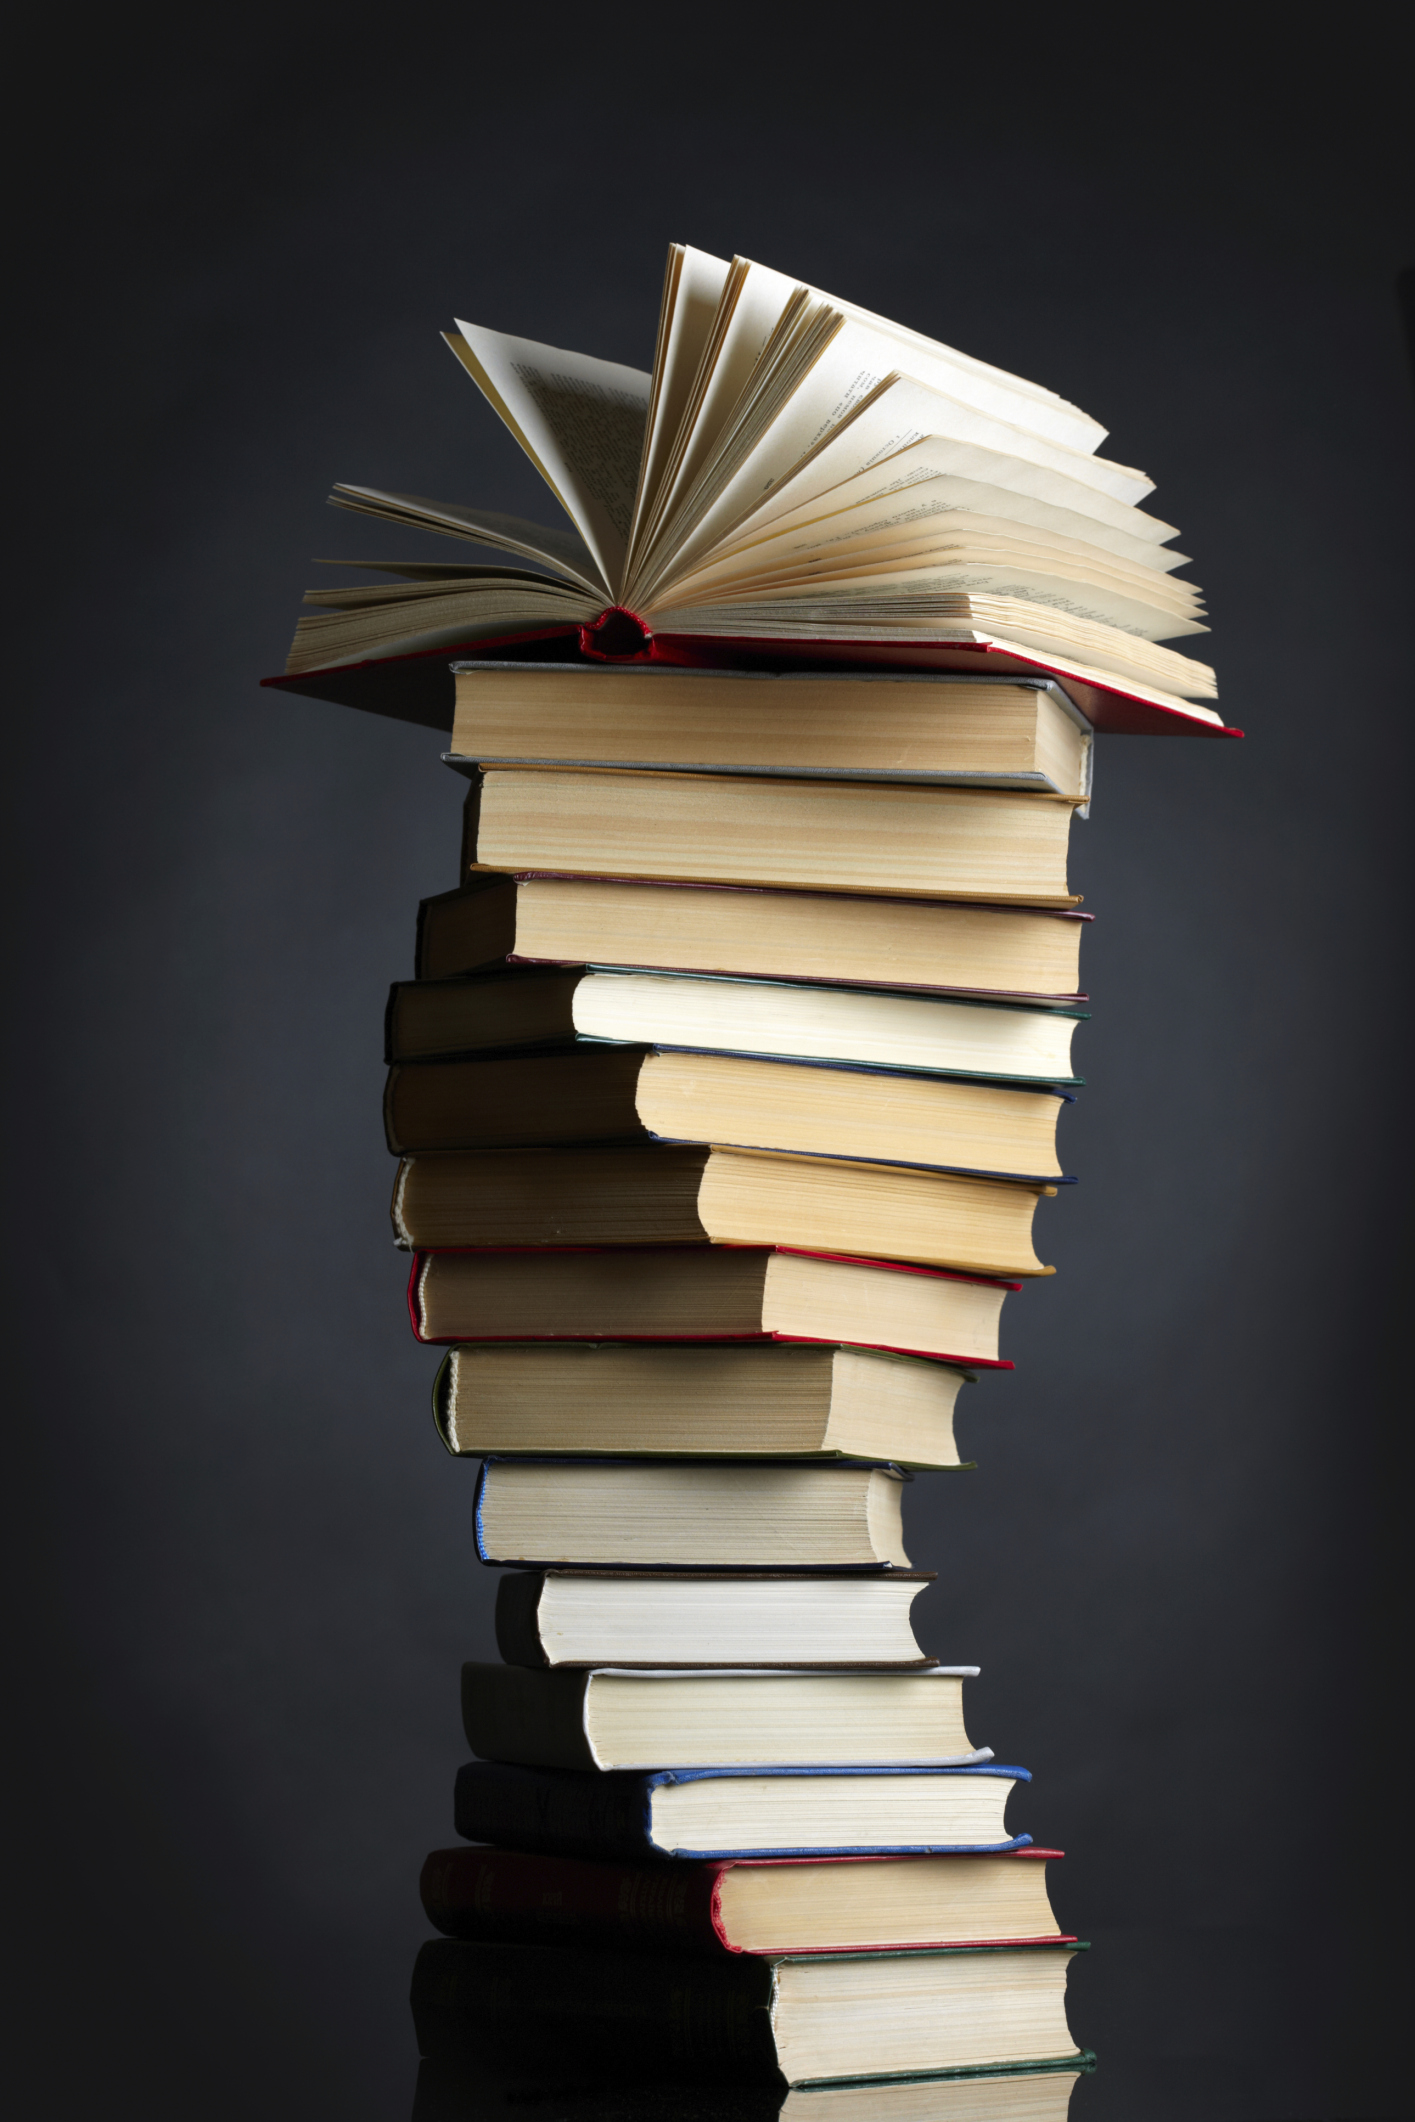 Tips for Publishing Your Own Book